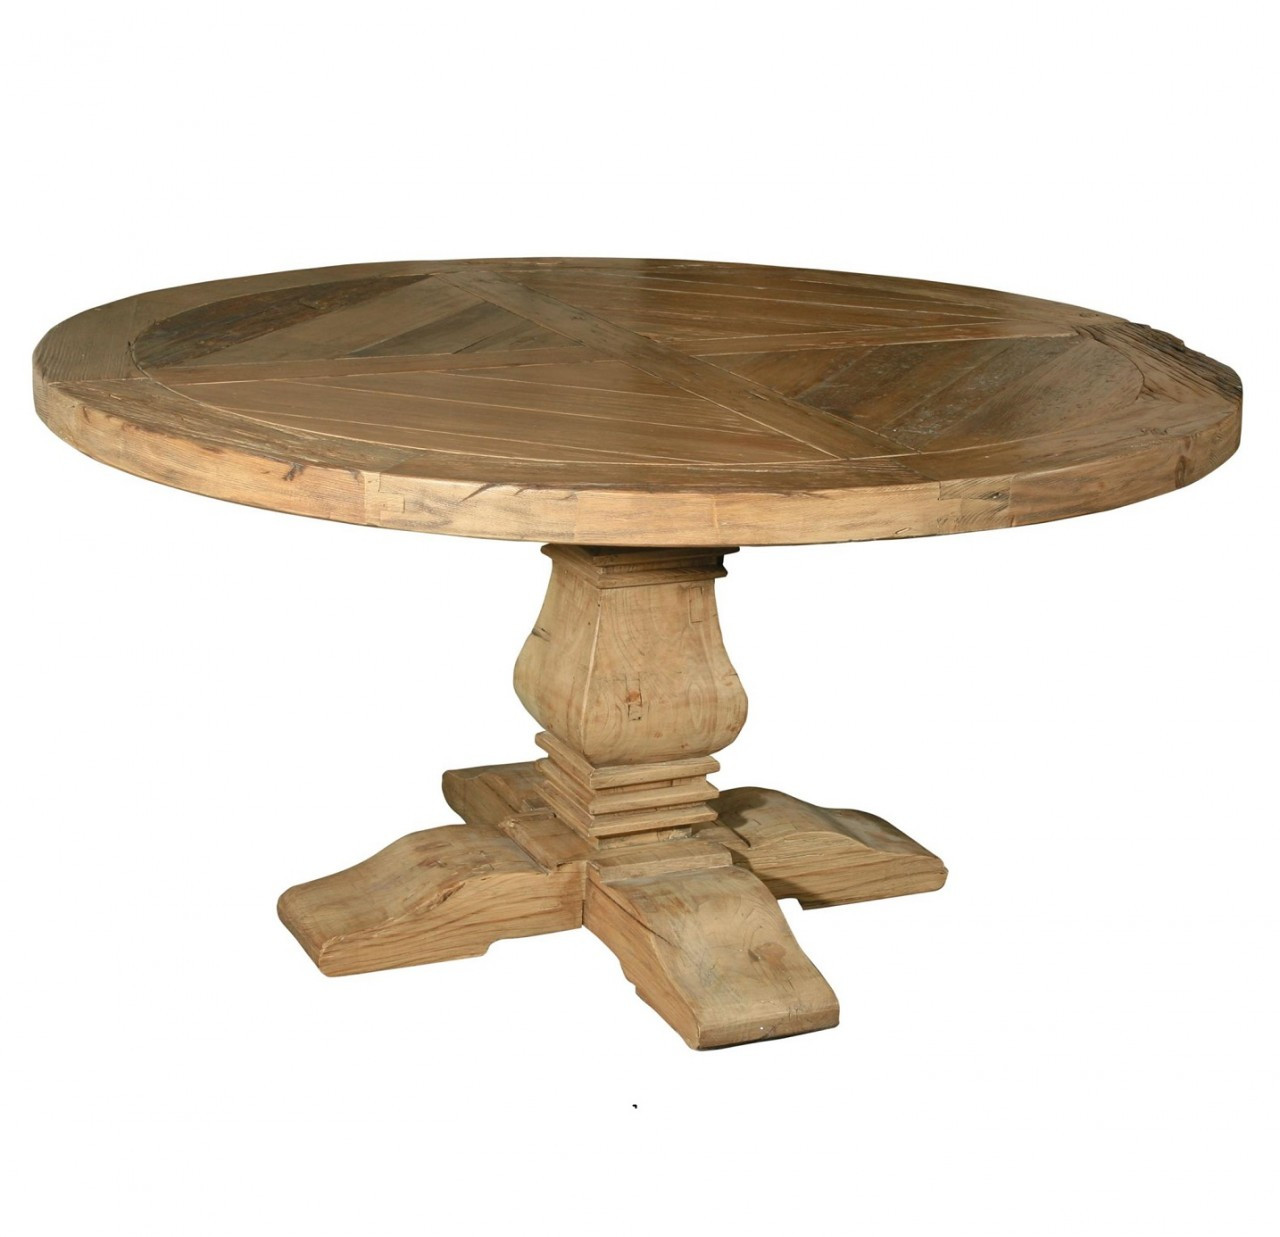 Pedestal 60quot Round Dining Table Reclaimed Wood Round  : SalvagedPedestalRoundtables98874133565021312801280 from www.zinhome.com size 1280 x 1237 jpeg 130kB